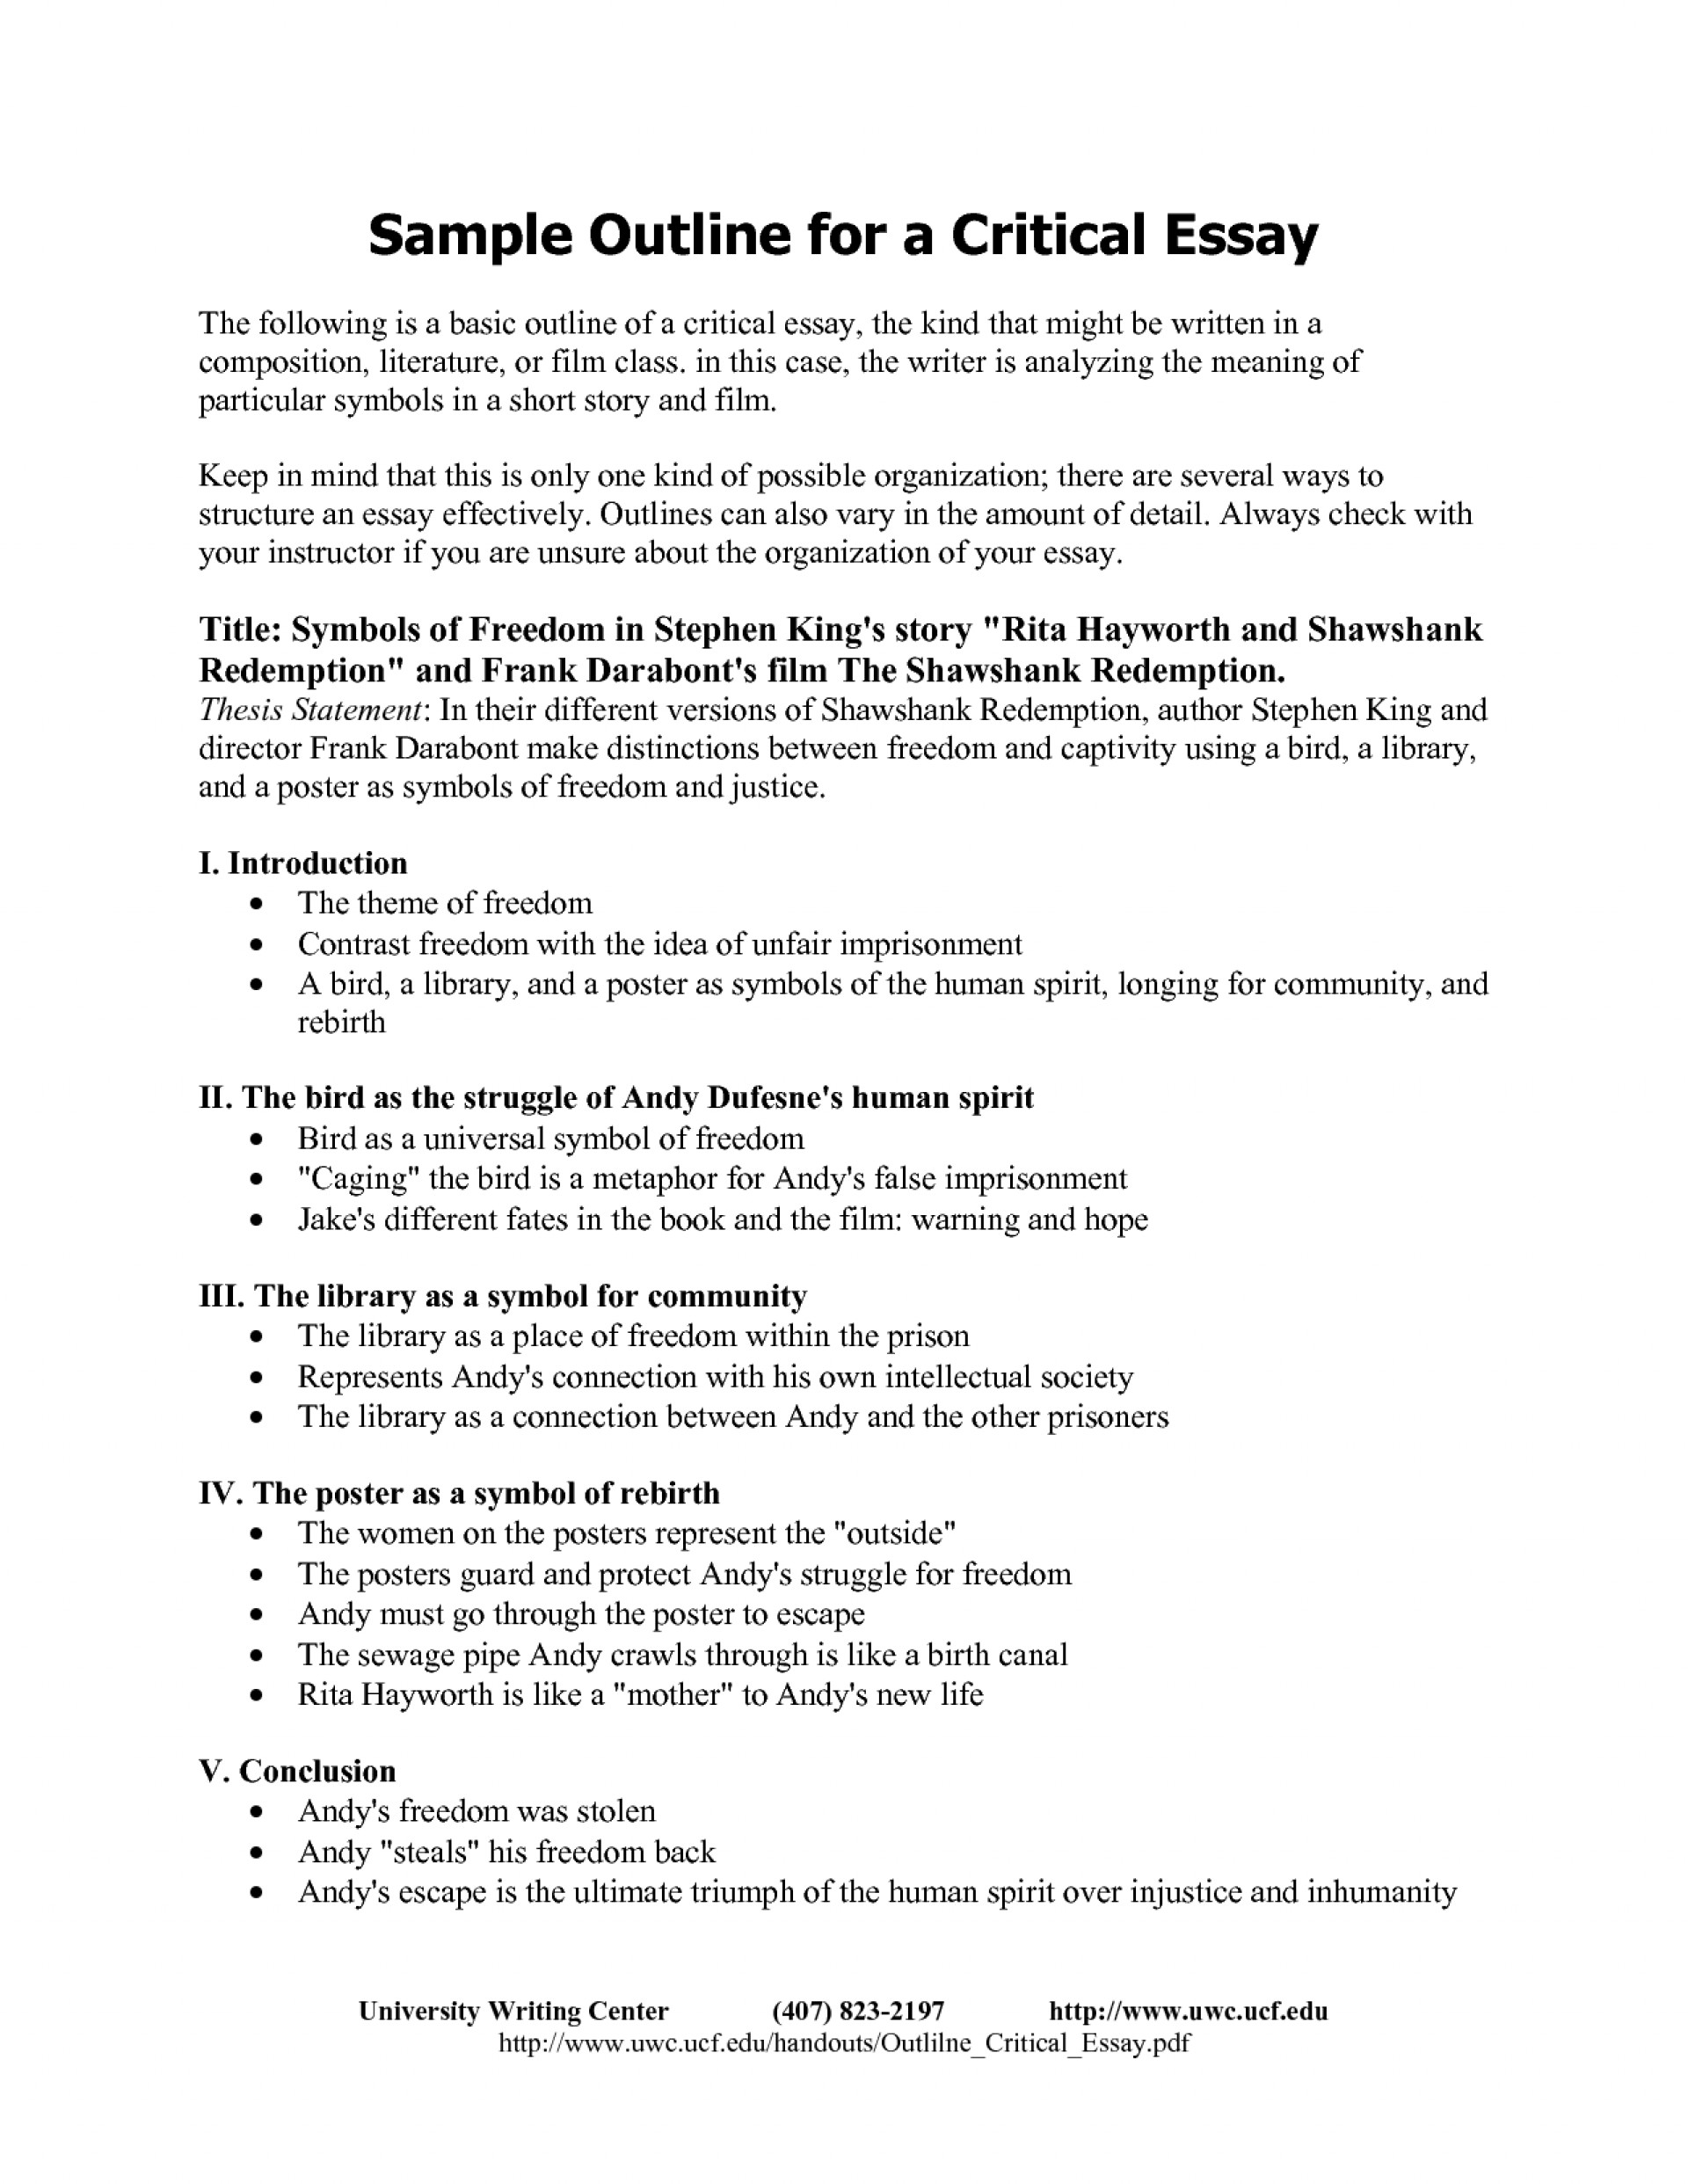 006 Literary Criticismy Example Bunch Ideas Of Critical Lens Gcse Examples How To Write Beautiful Sexual Orientation Discrimination Excellent Criticism Essay On The Great Gatsby Conclusion Sample 1920